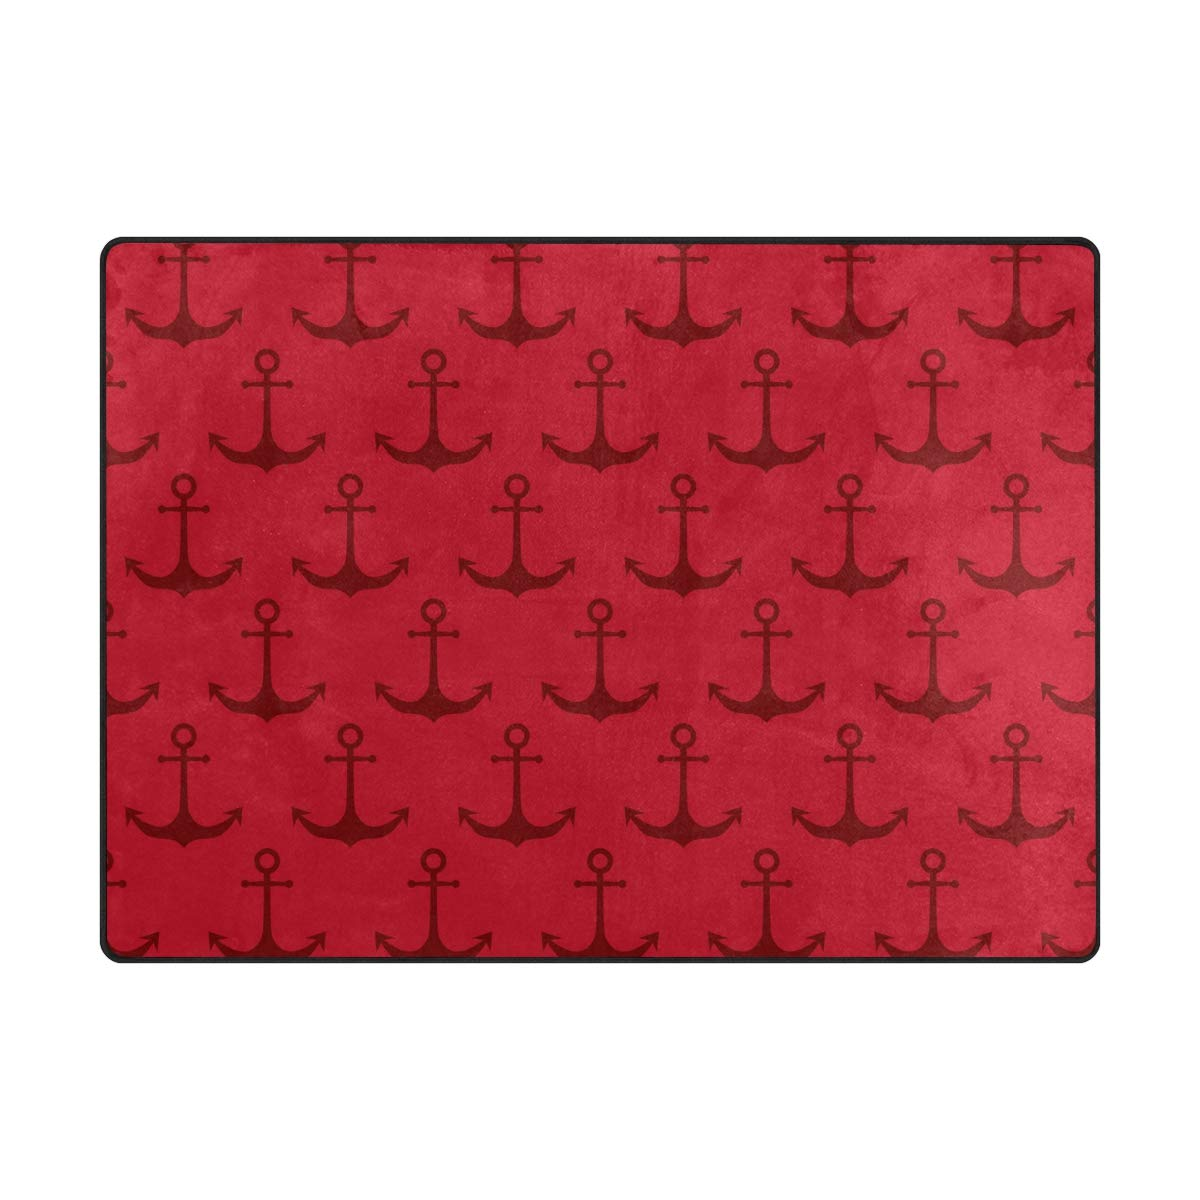 La Random Large Soft Rugs 63x48 Inches Red Nautical Anchor Non-Skid Lightweight Nursery Yoga Rugs Play Mat for Kids Playing Room Living Room Bedroom Floor Mats